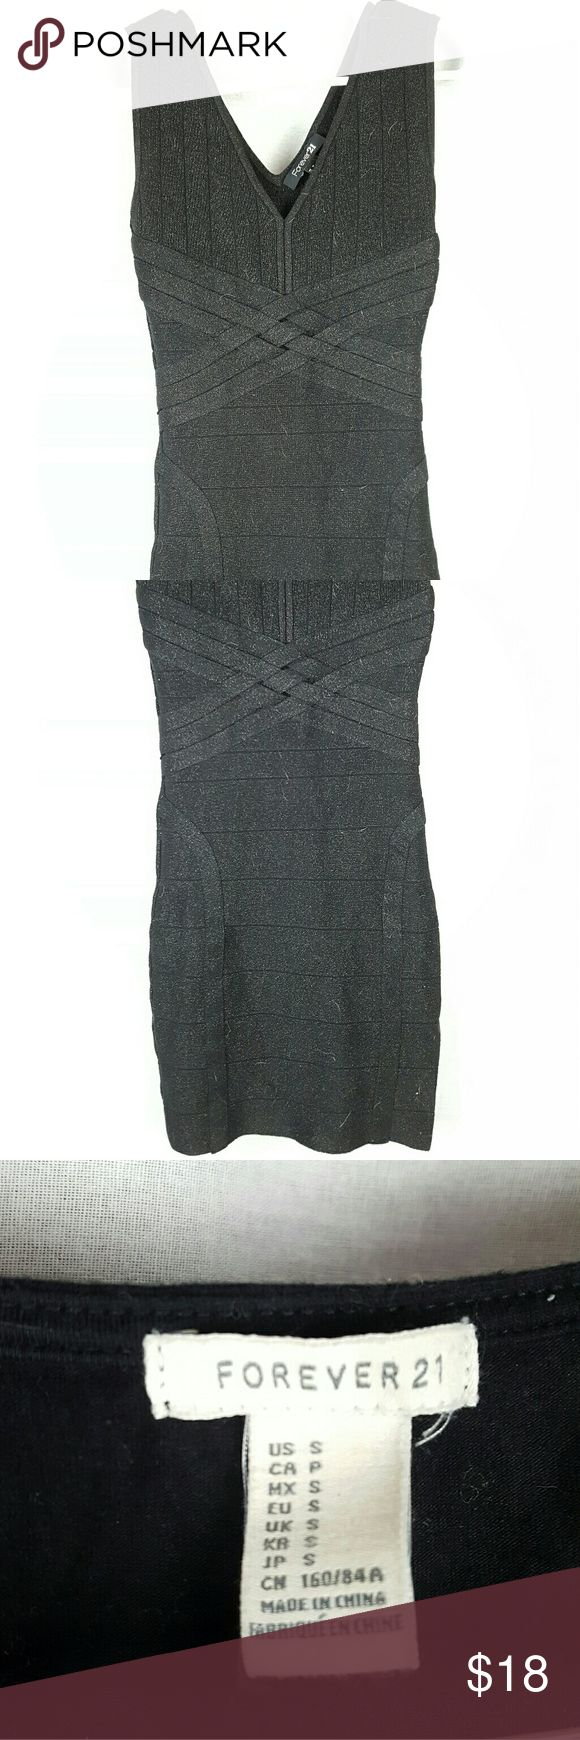 Forever 21 Grey Bodycon Dress The price is negotiable, feel free to ask any questions or make an offer! Forever 21 Dresses Mini